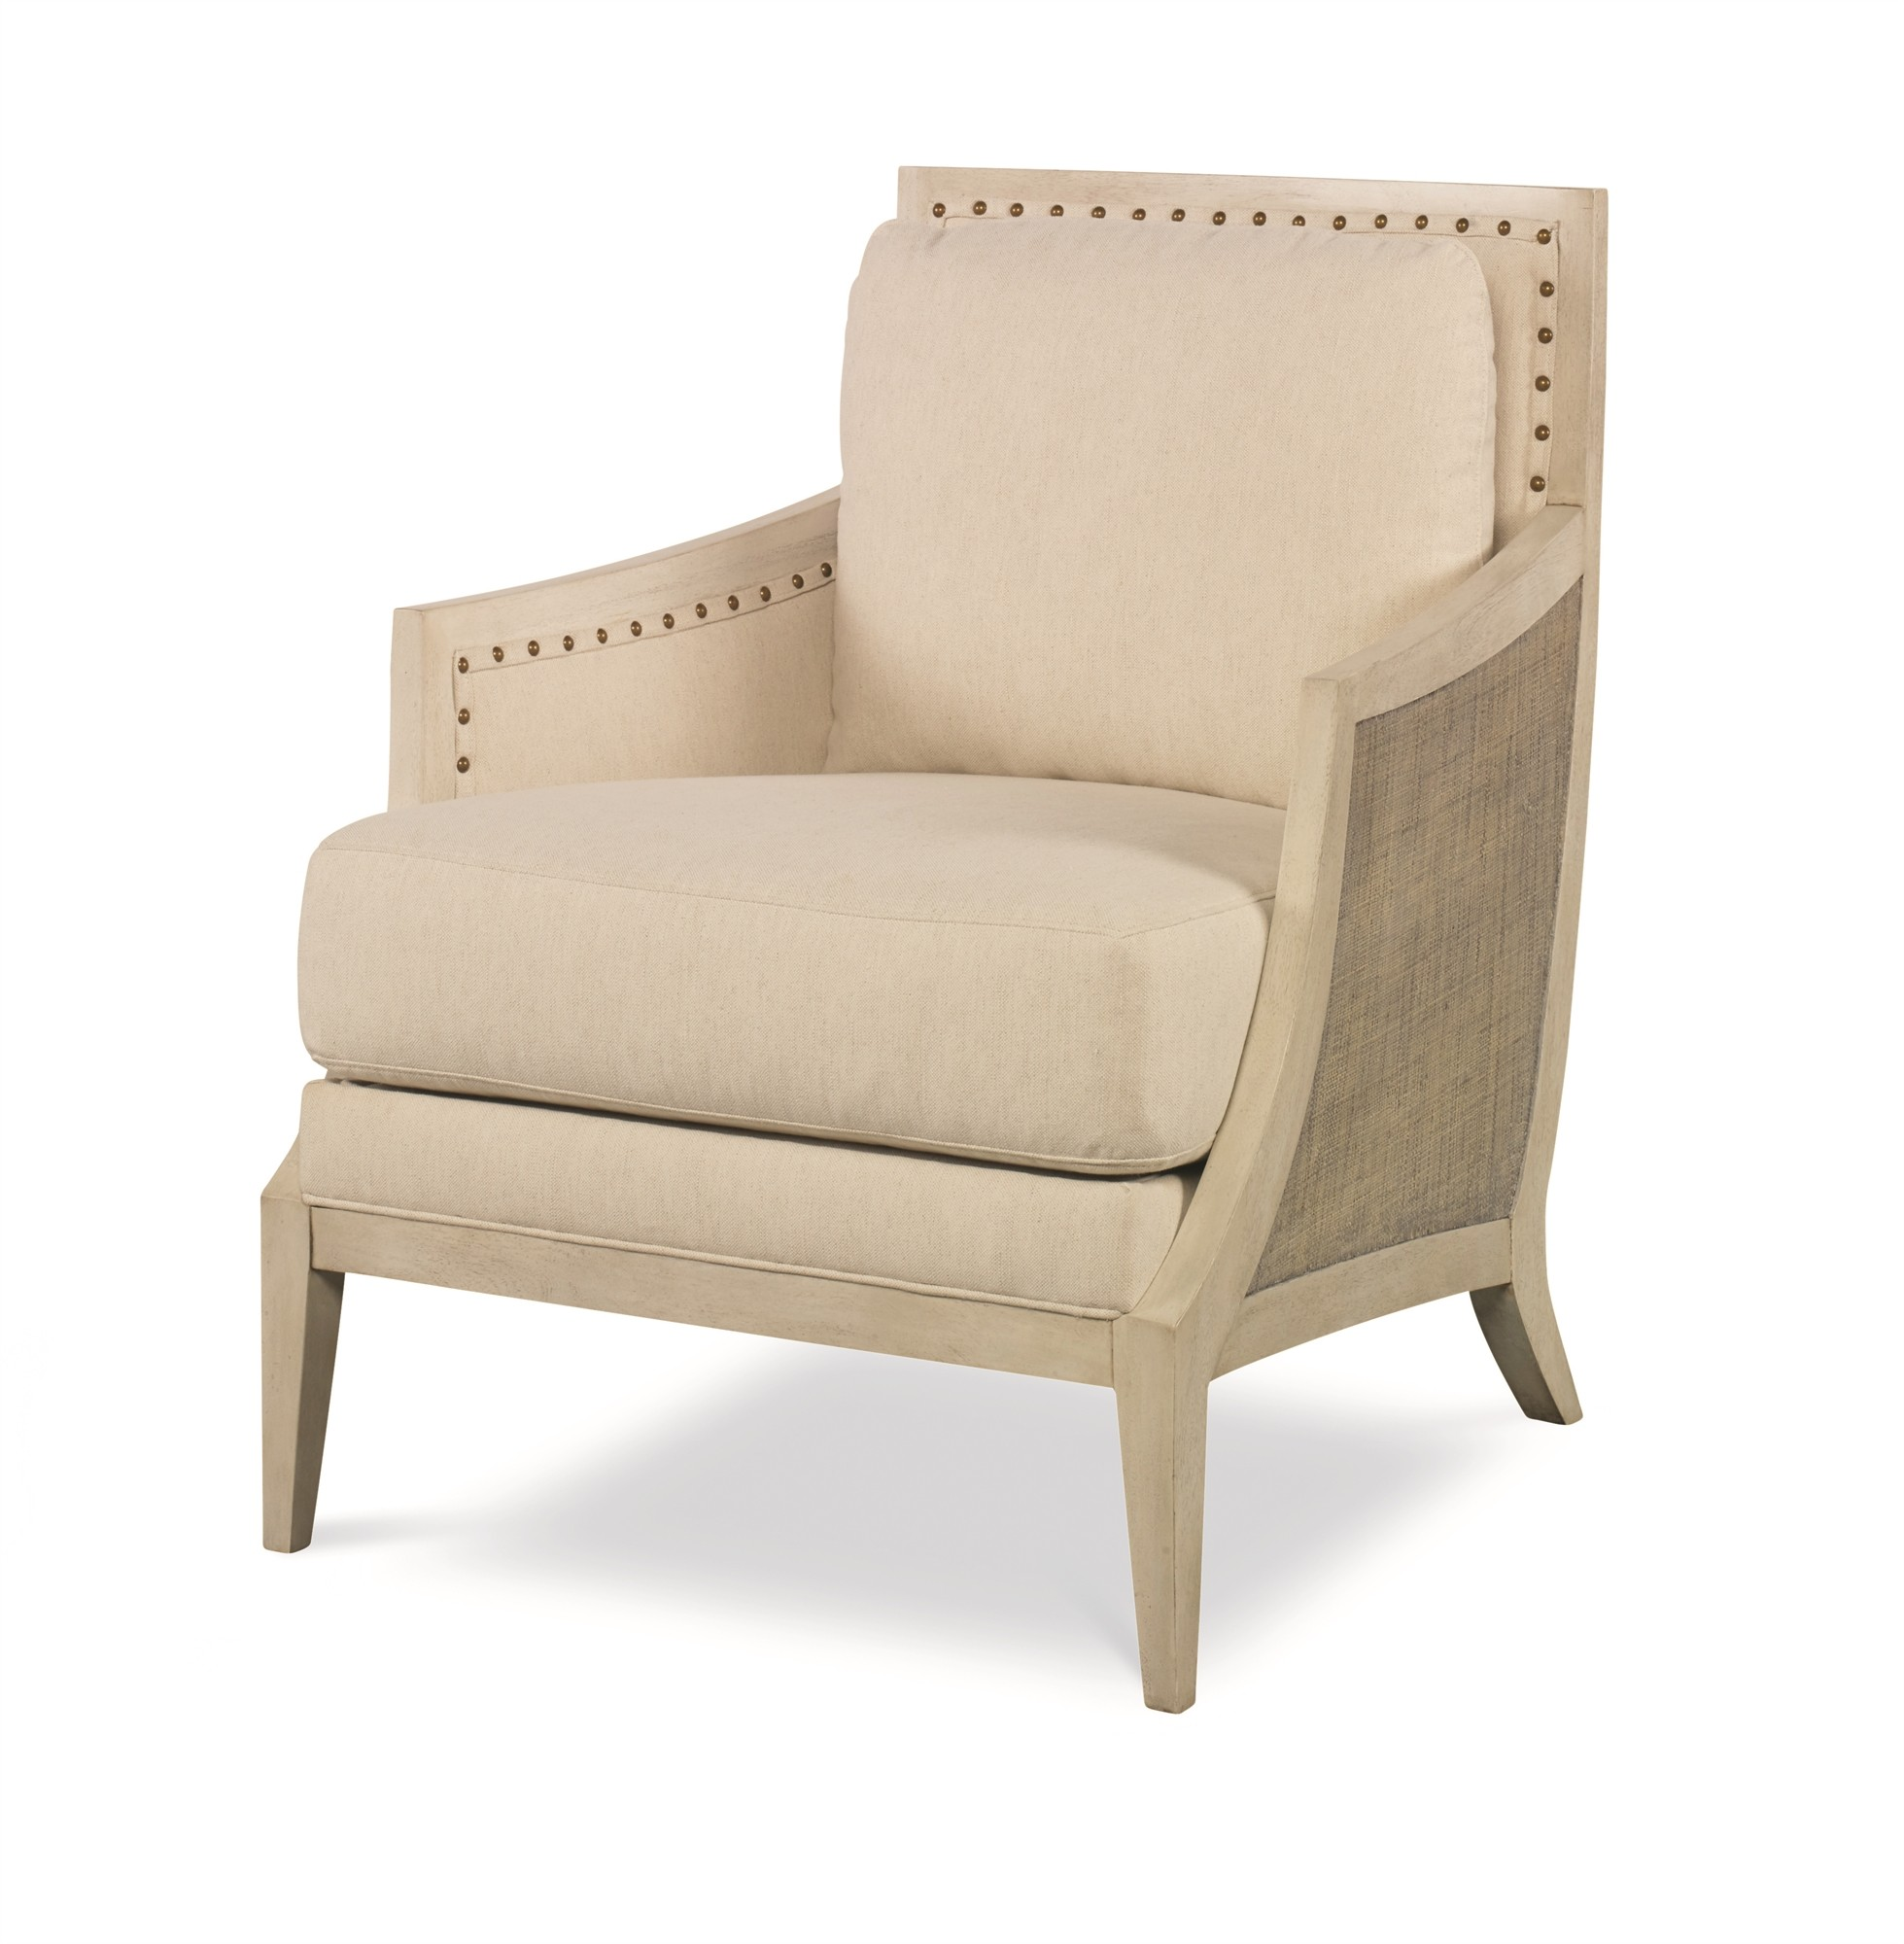 Chesapeake Lounge Chair-French Grey/Pn/Flax (Pv-052-210-105-07)